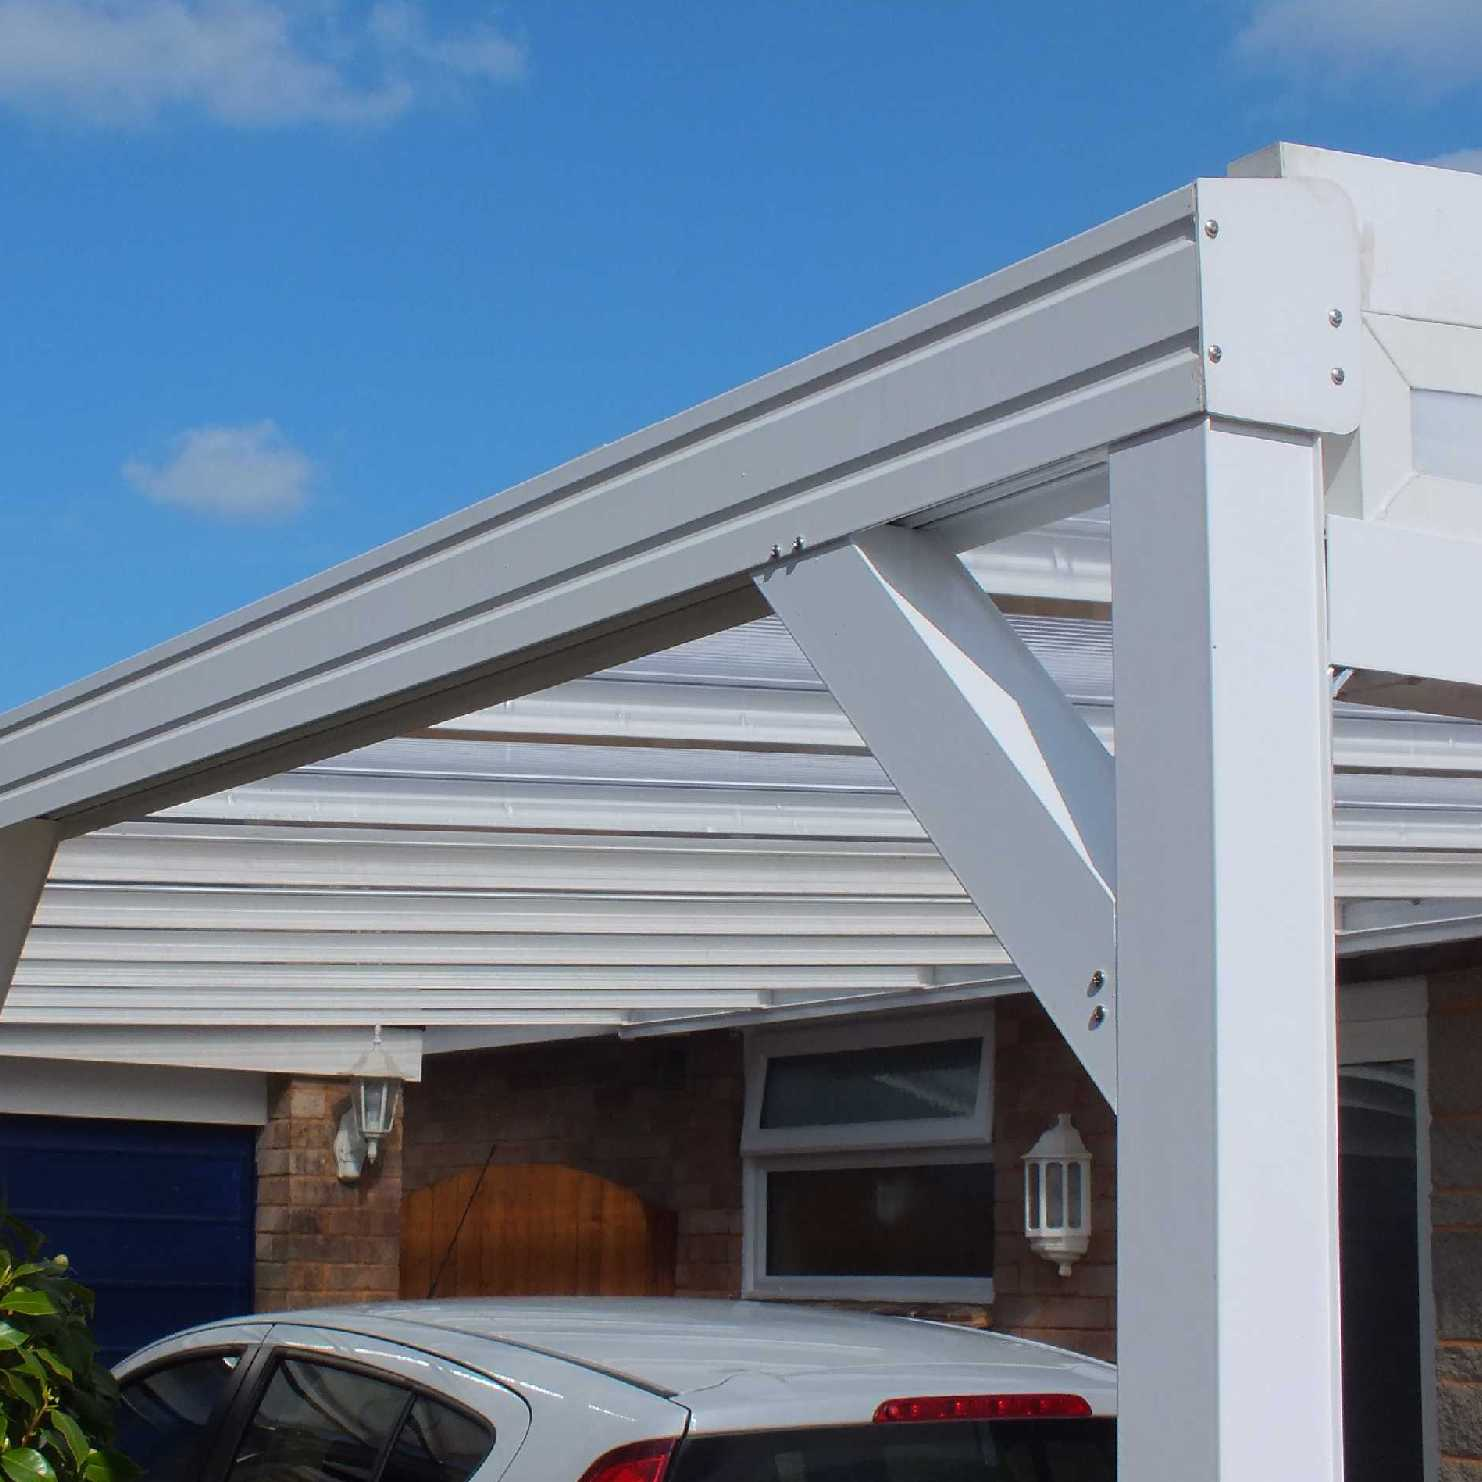 Buy Omega Smart White Lean-To Canopy with 16mm Polycarbonate Glazing - 6.0m (W) x 2.5m (P), (3) Supporting Posts online today